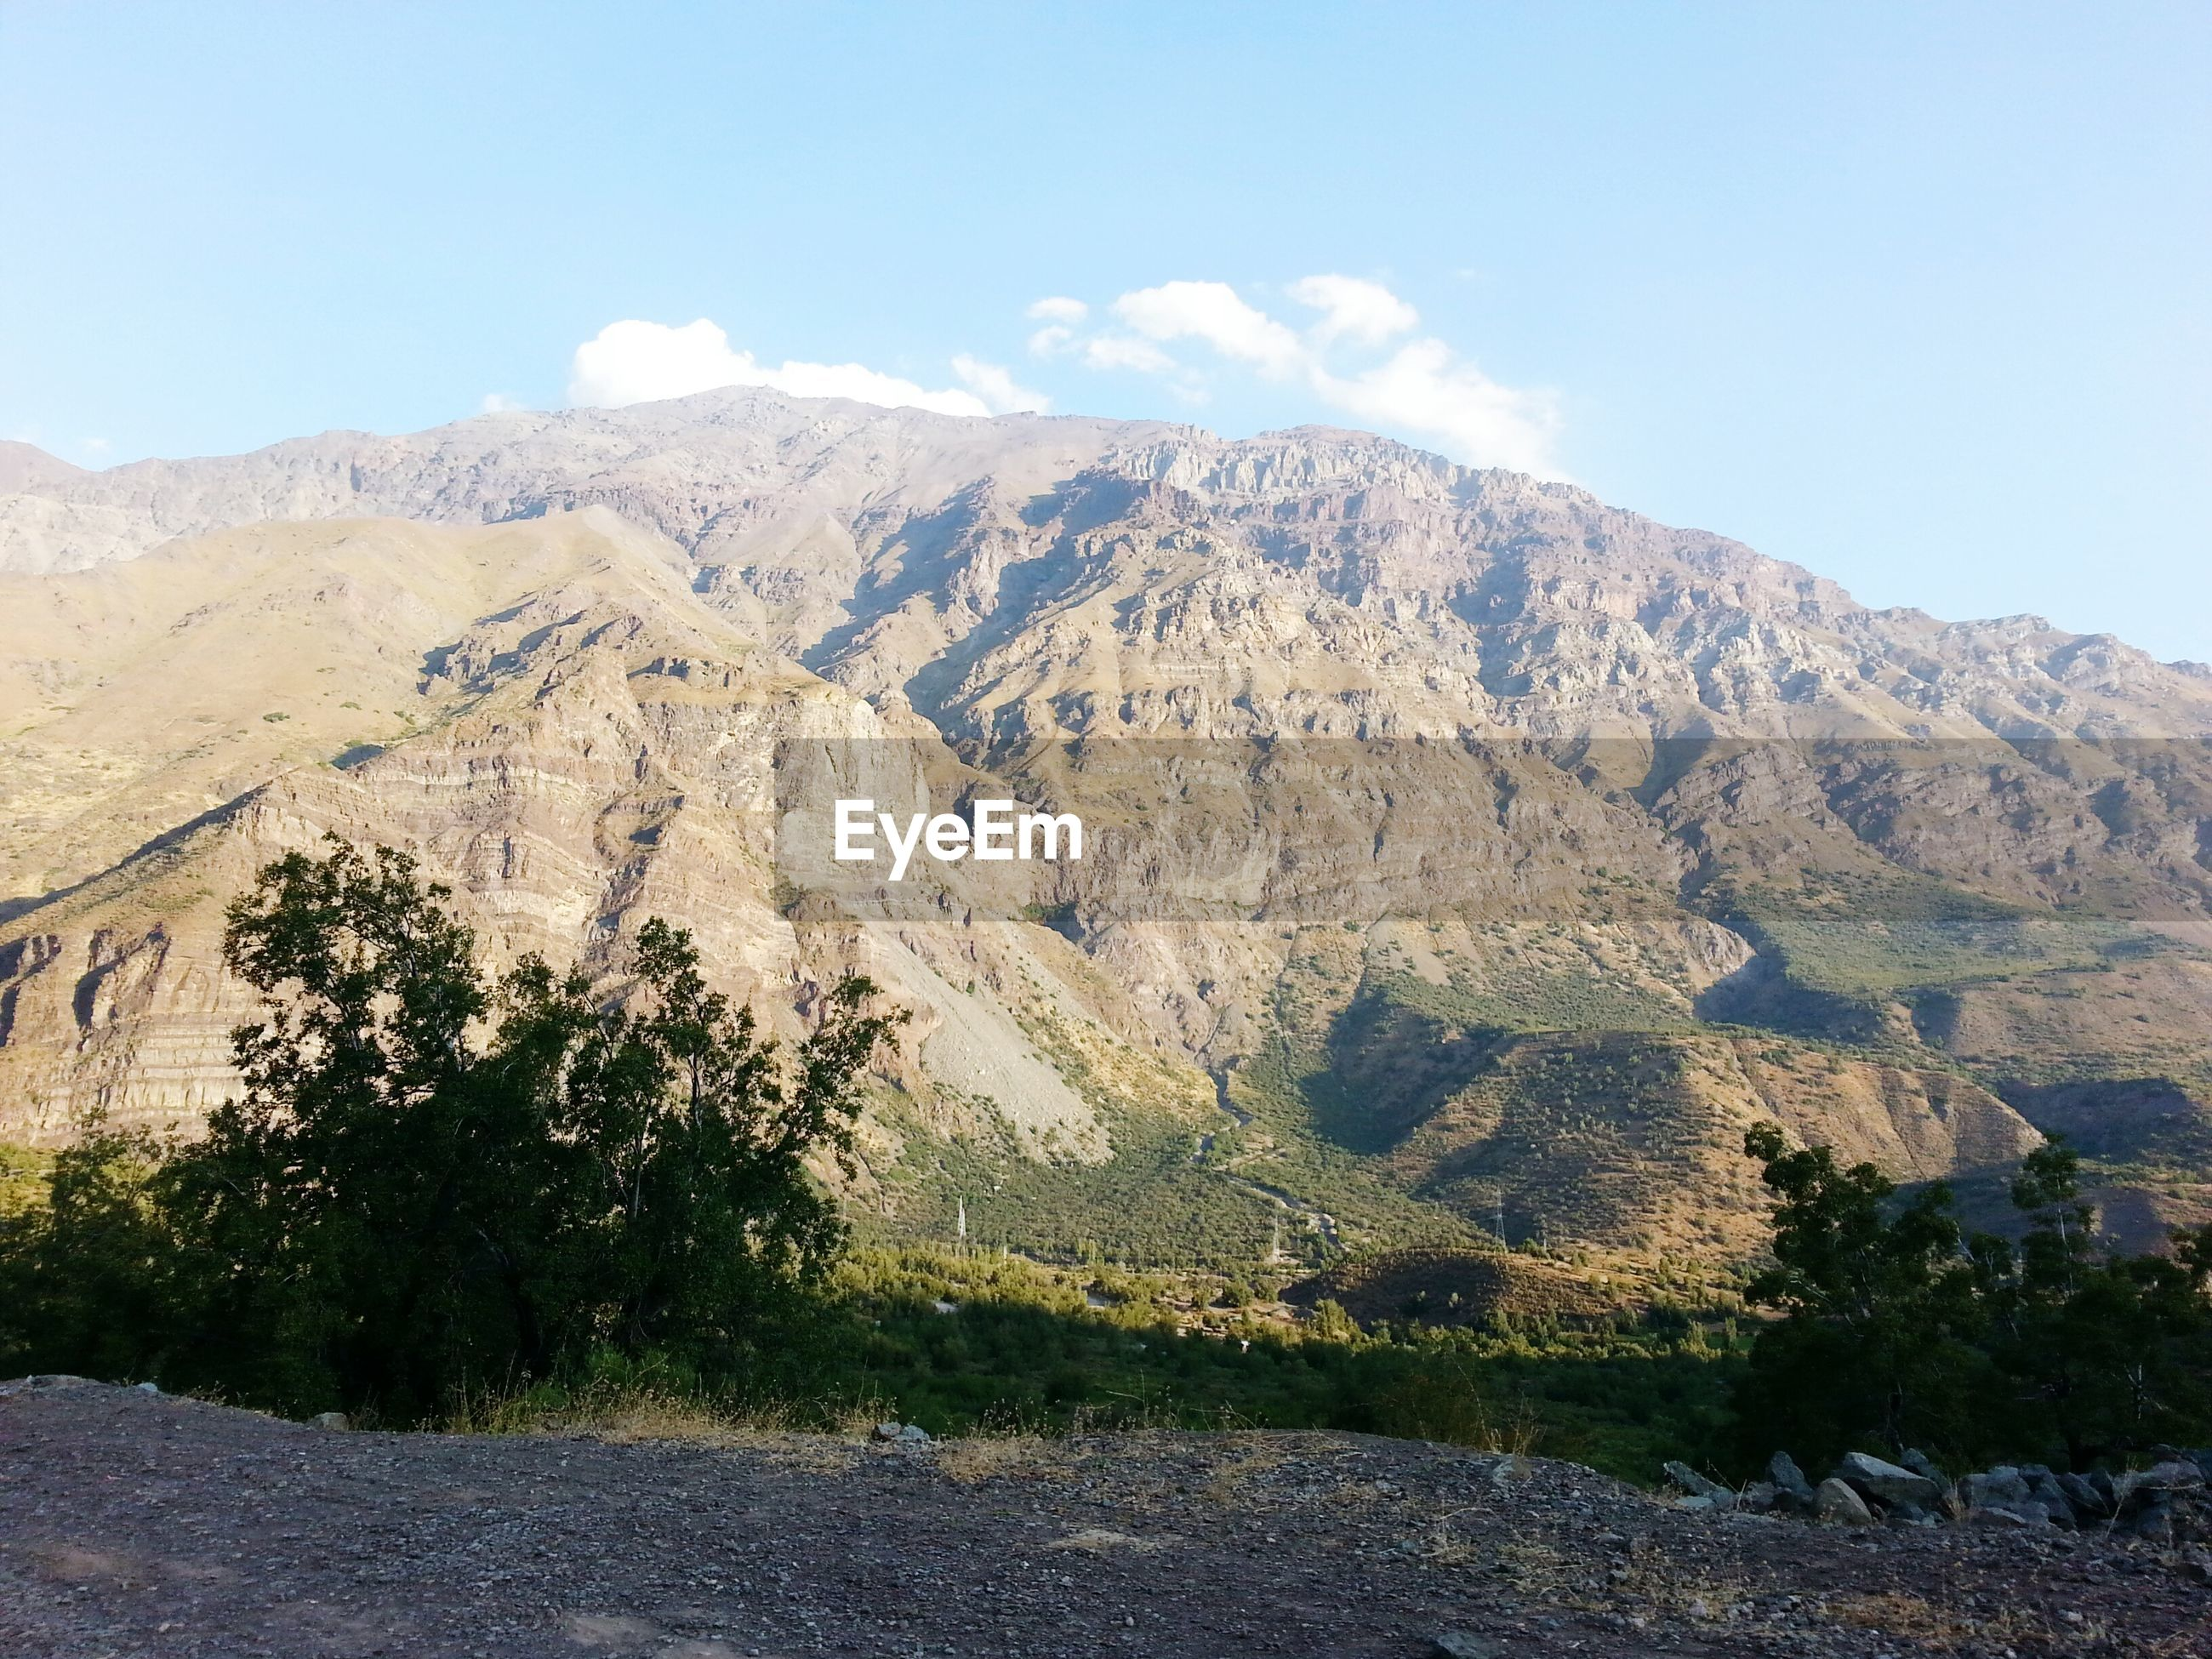 mountain, mountain range, tranquil scene, landscape, tranquility, scenics, sky, tree, beauty in nature, nature, non-urban scene, clear sky, remote, day, hill, rocky mountains, road, outdoors, physical geography, rock - object